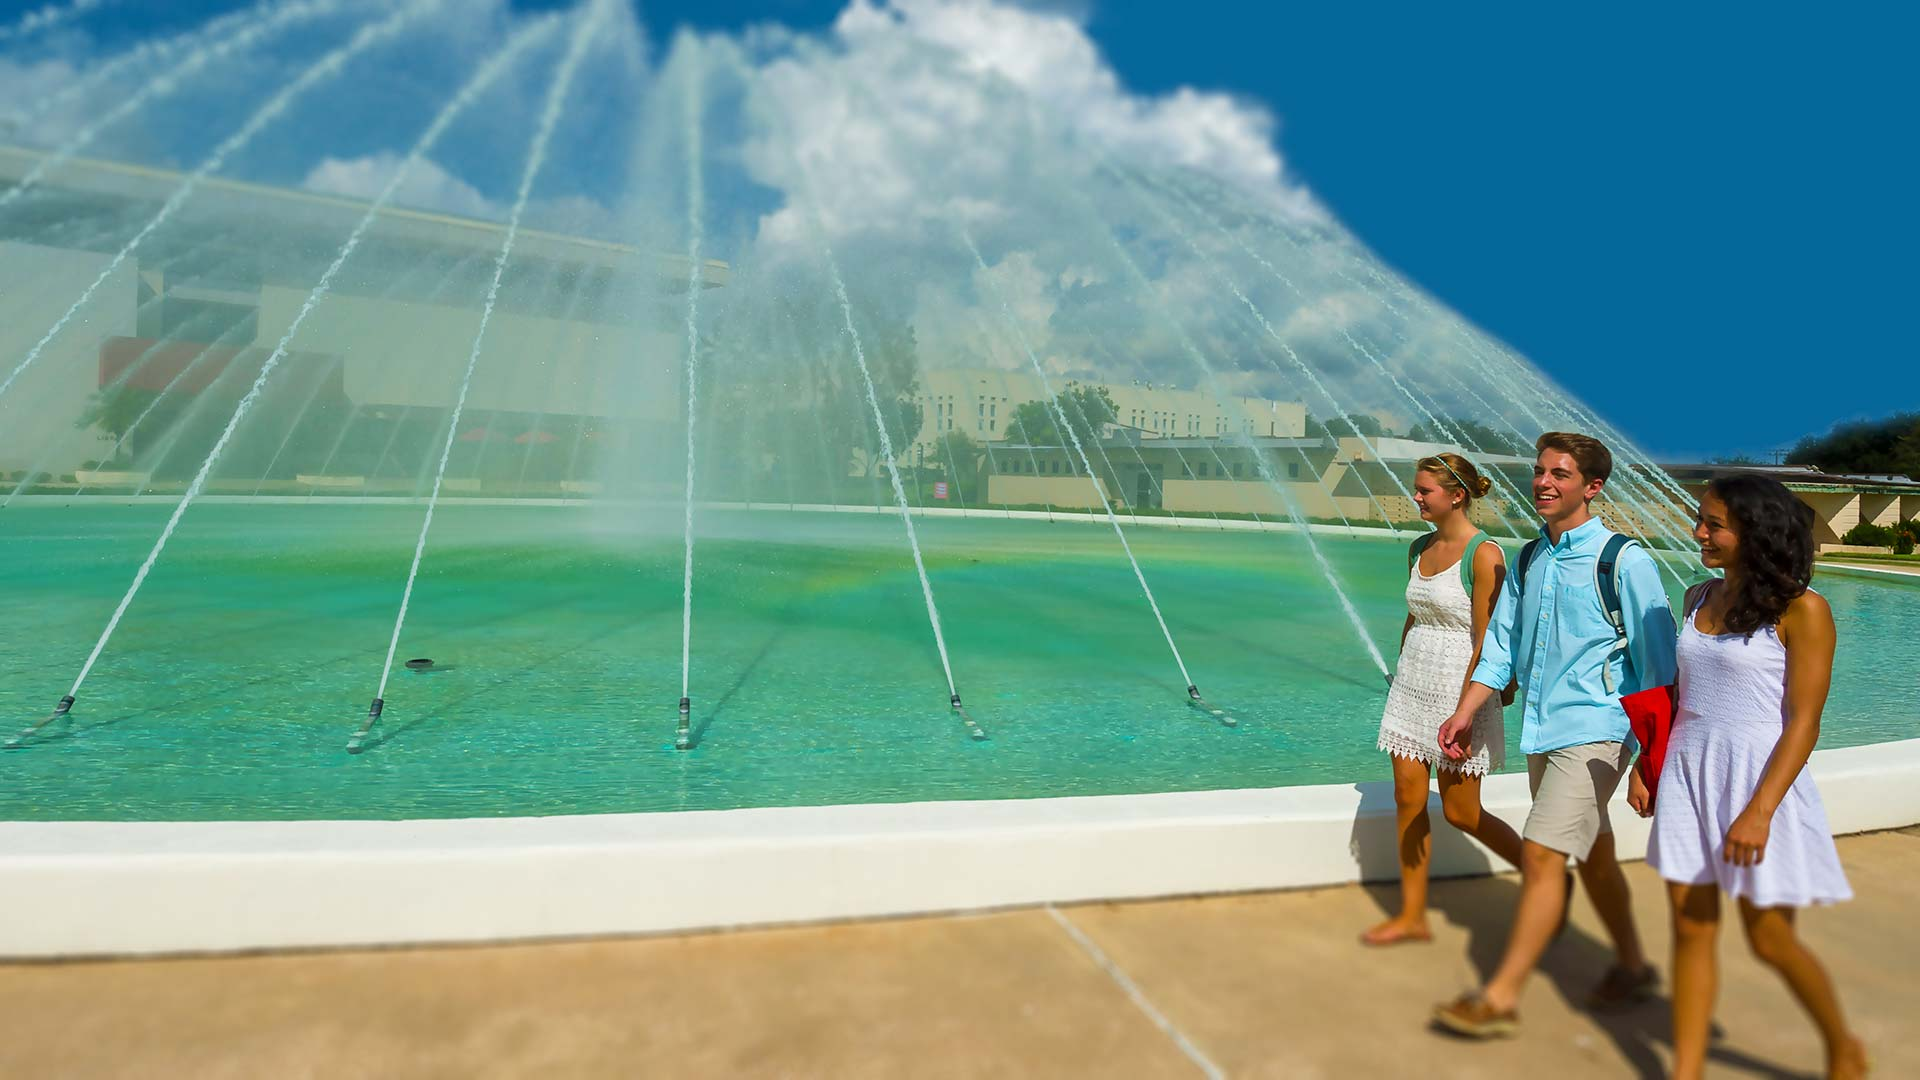 students walking in front of the water dome